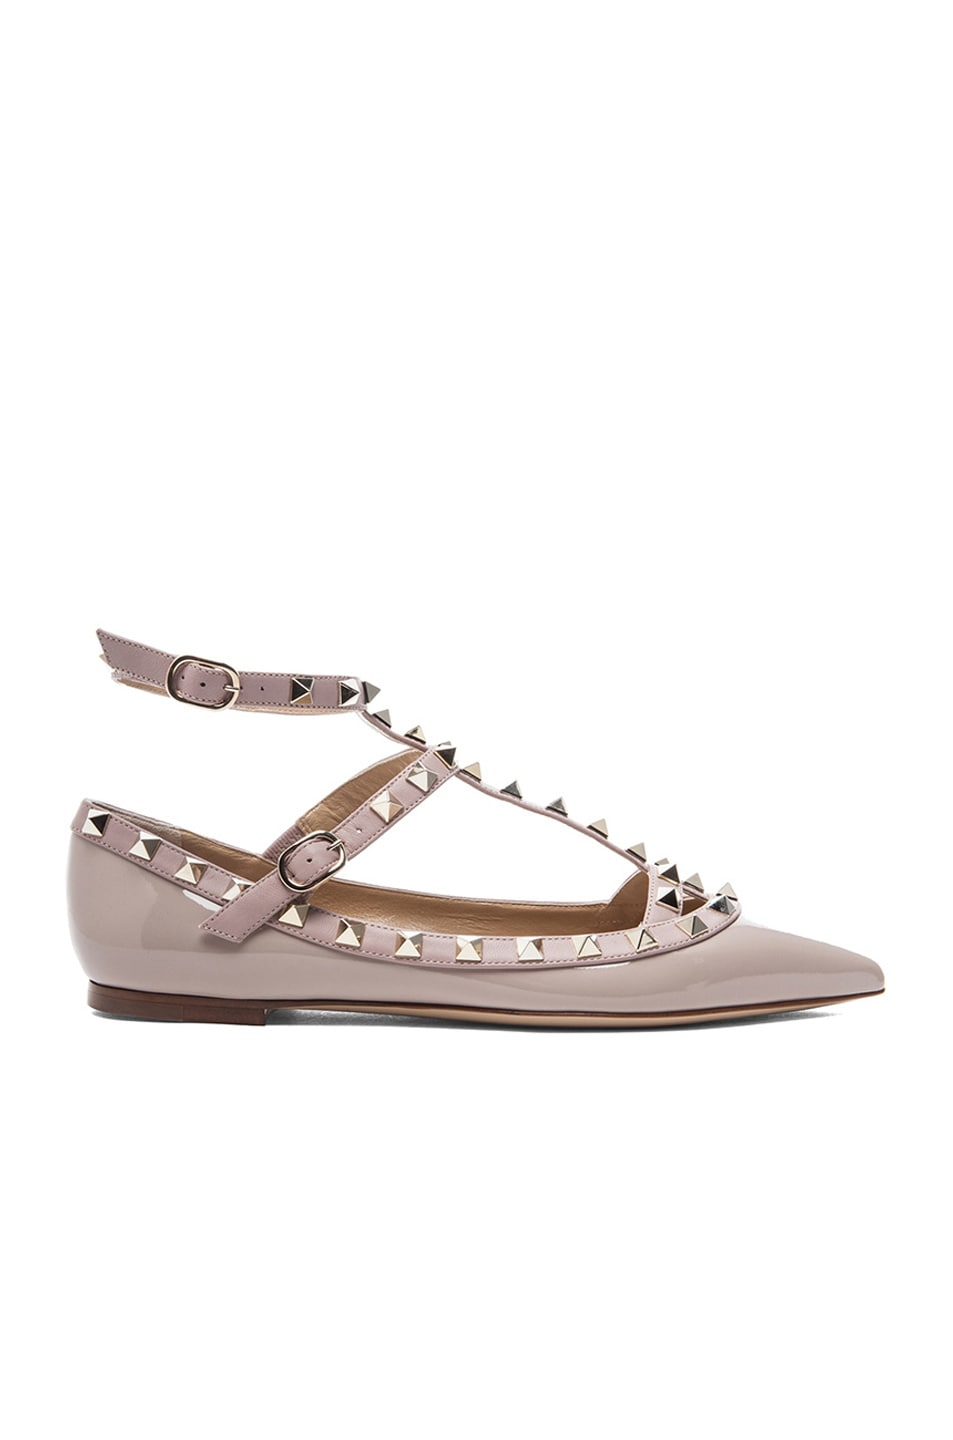 Image 1 of Valentino Rockstud Patent Cage Flats in Poudre